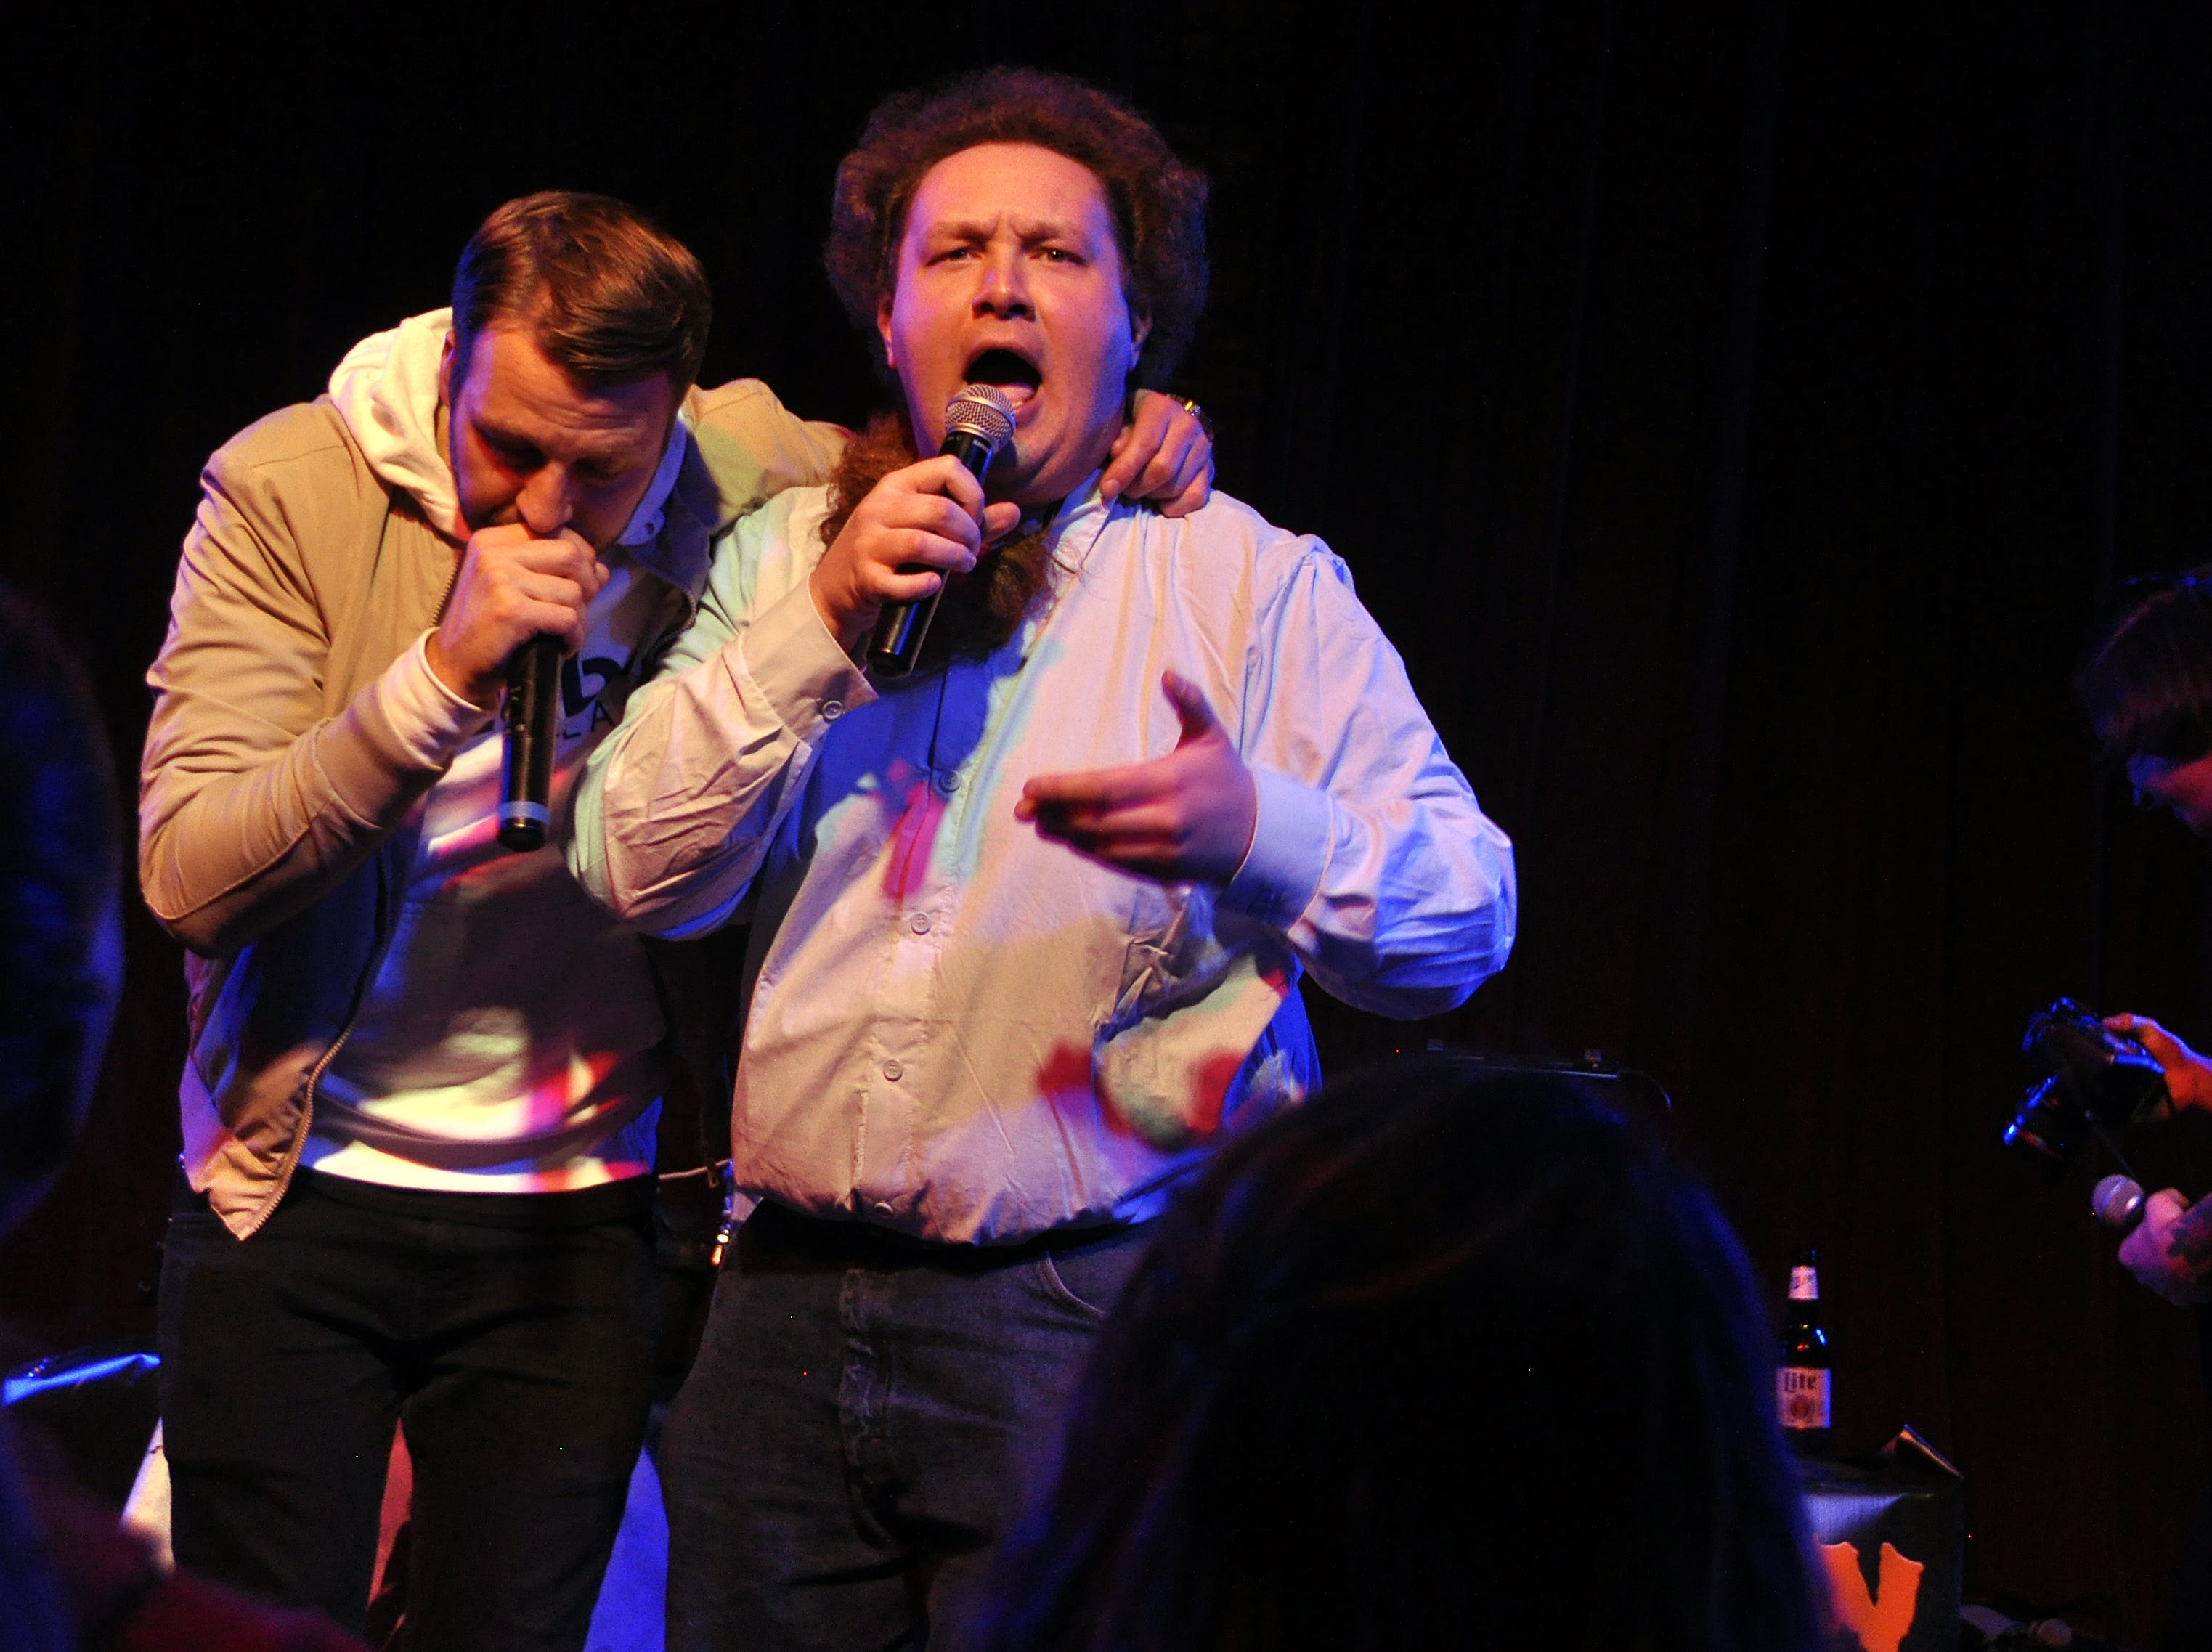 Zach Dresch, right, and Danny Eisenhauer  perform at the 10th Annual Halloween Rap Karaoke show at Icon Lounge Friday night. The event is was created by the Sioux Falls band Soulcrate.